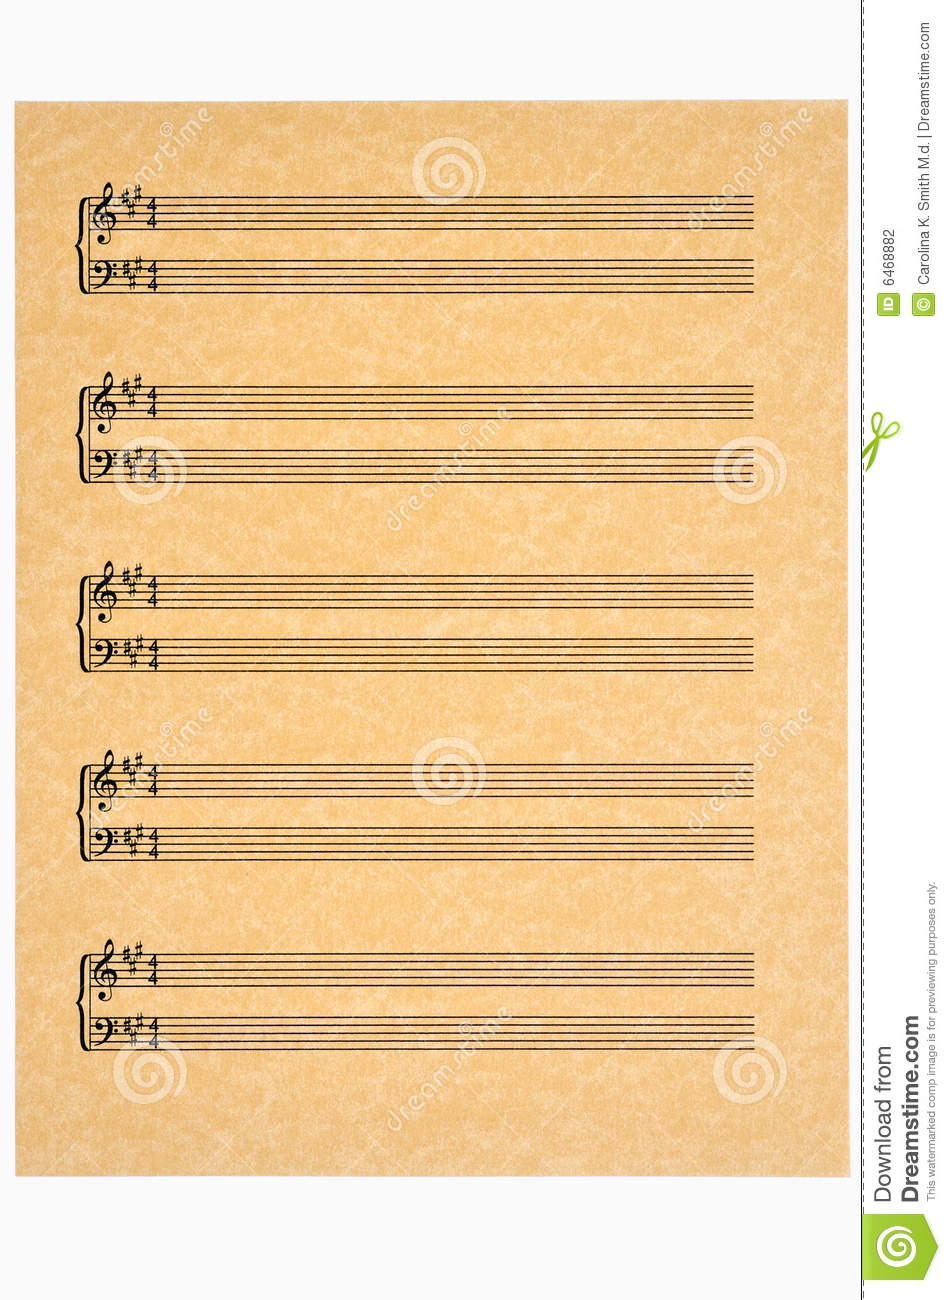 Key Of A In 4 4 Time Blank Music Sheet On Parchment Paper Ready For